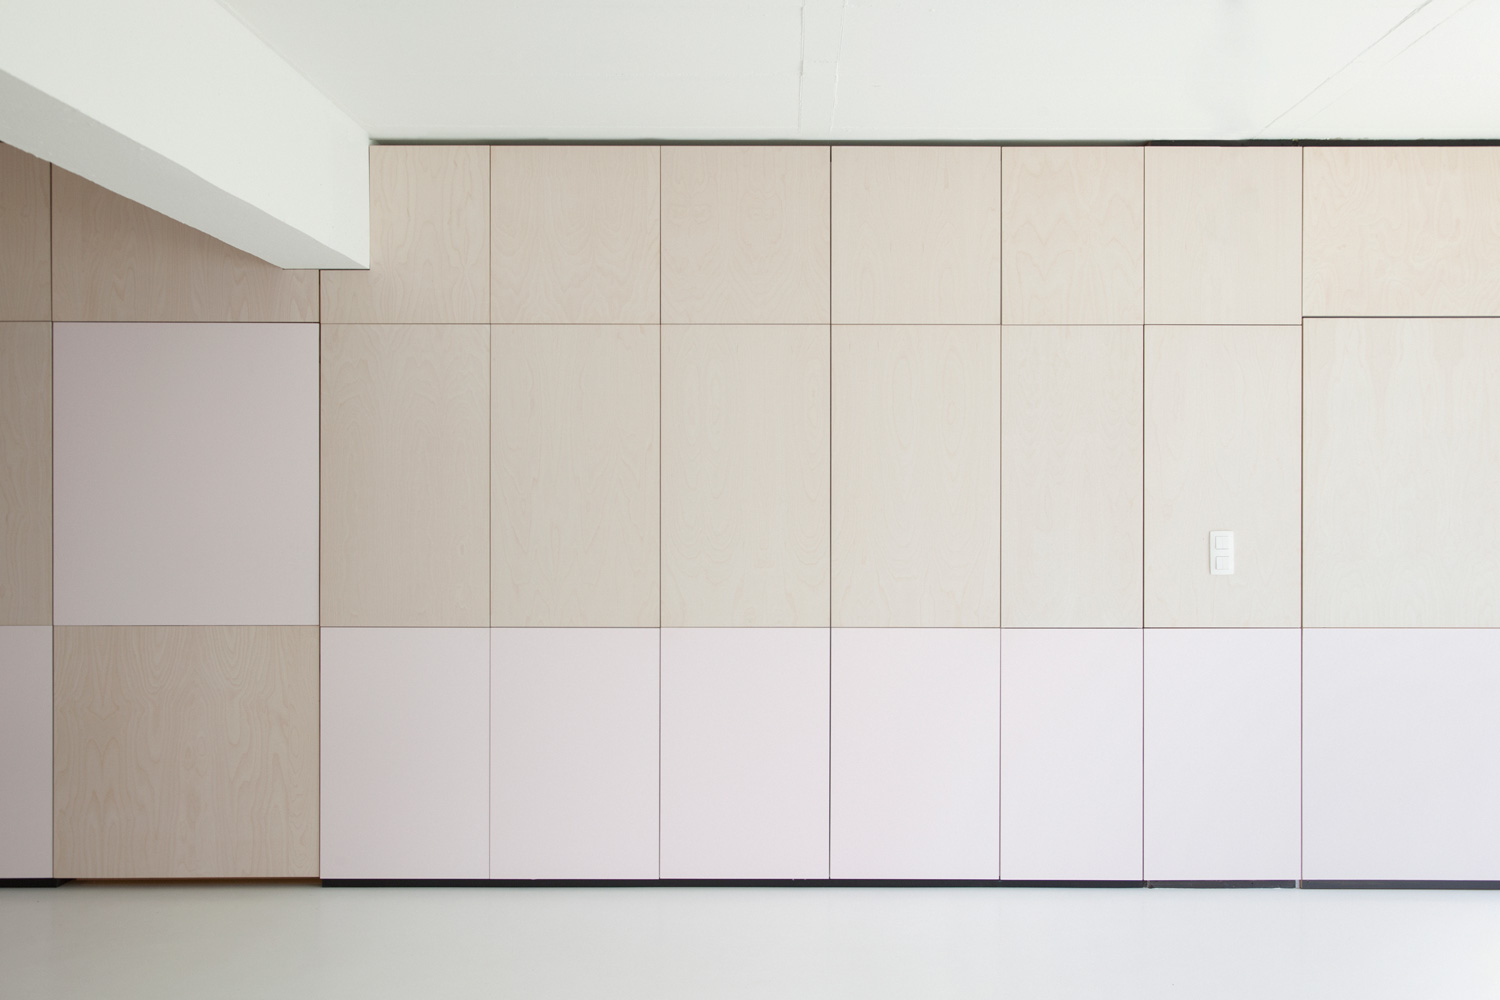 colorful kitchen by belgian designer dries otten 4 Colorful Kitchen By Belgian Designer Dries Otten